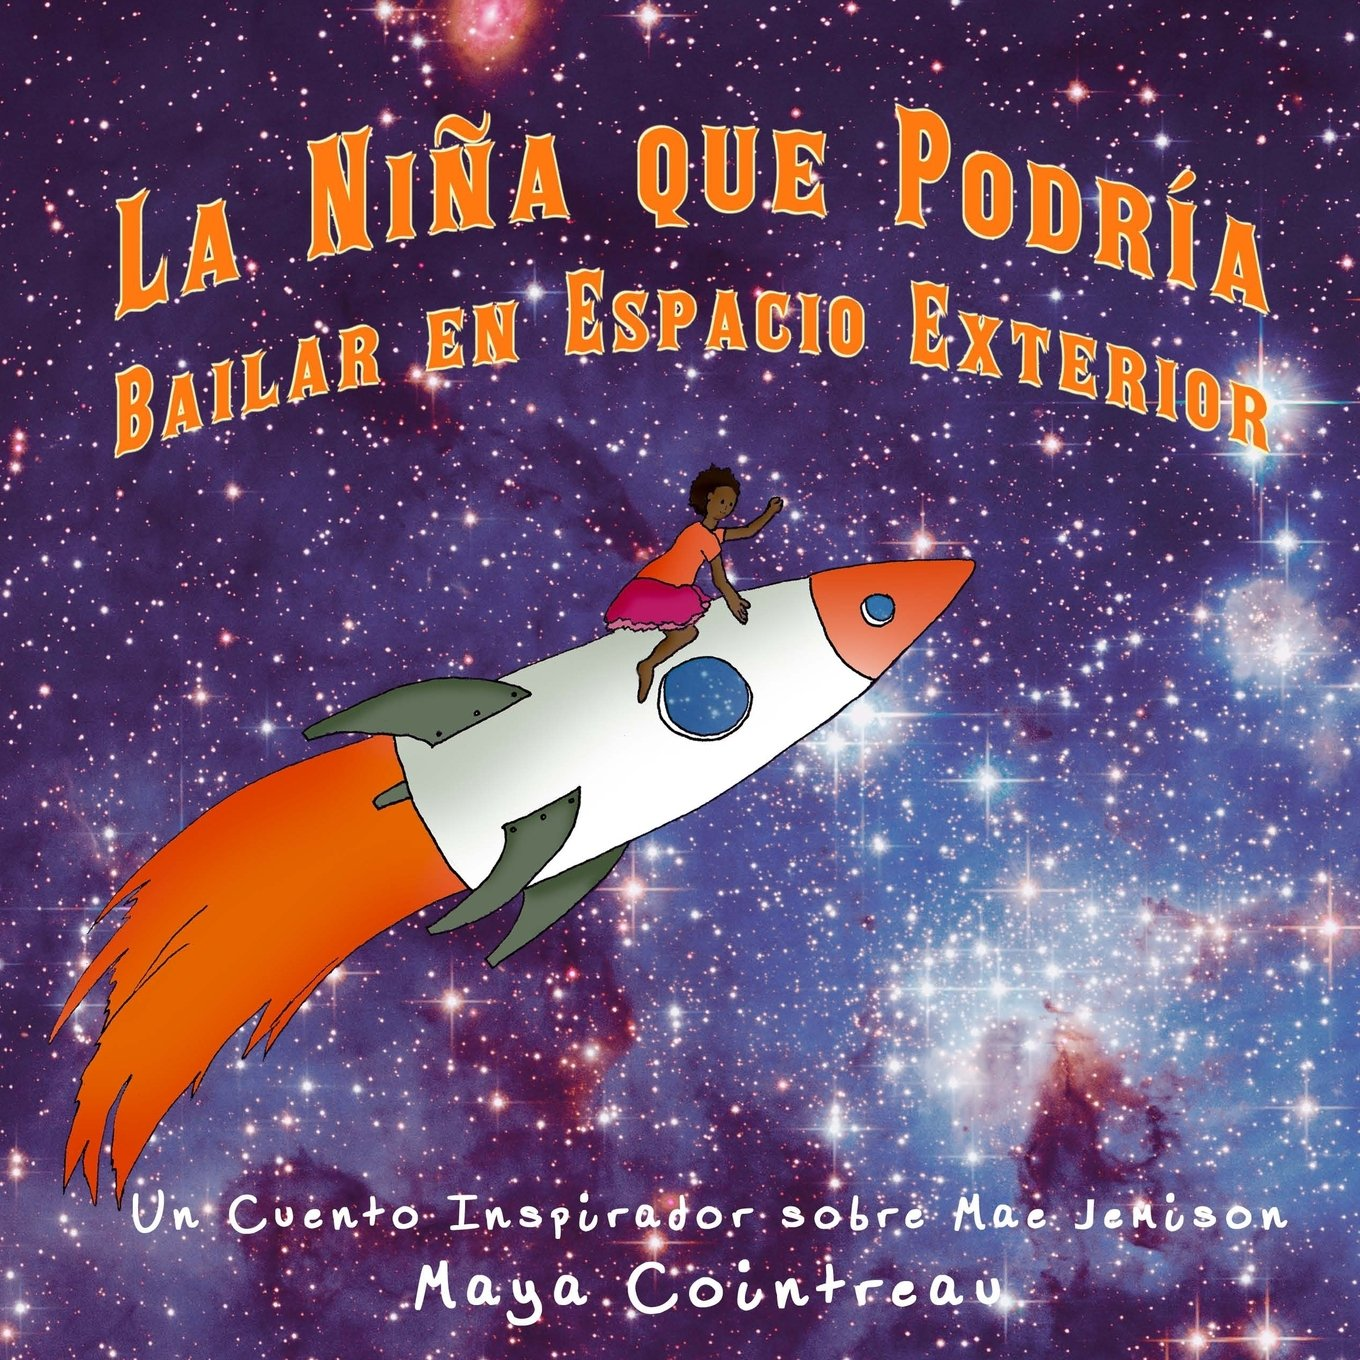 La Niña que Podría Bailar en Espacio Exterior - Un Cuento Inspirador sobre Mae Jemison (The Girls Who Could) (Volume 2) (Spanish Edition): Maya Cointreau: ...